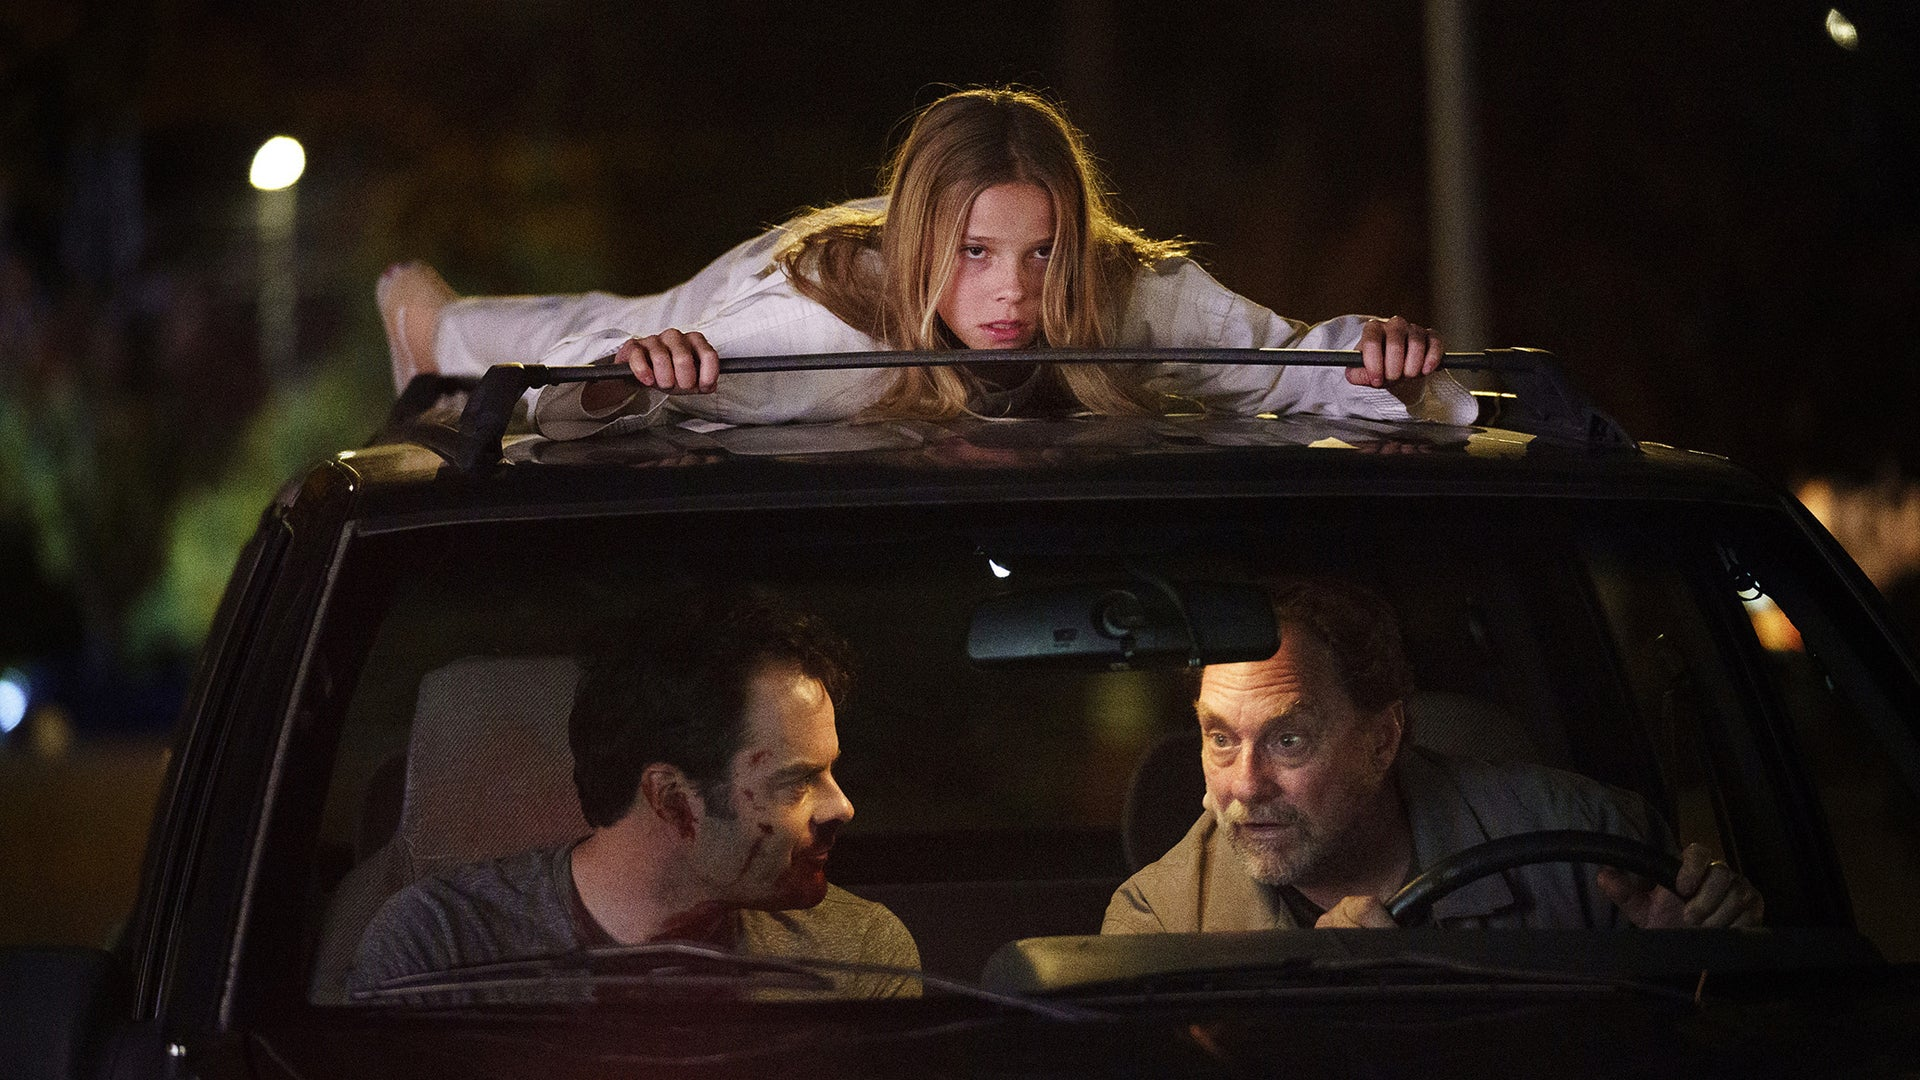 Jessi Giacomazzi, Bill Hader, and Stephen Root, Barry